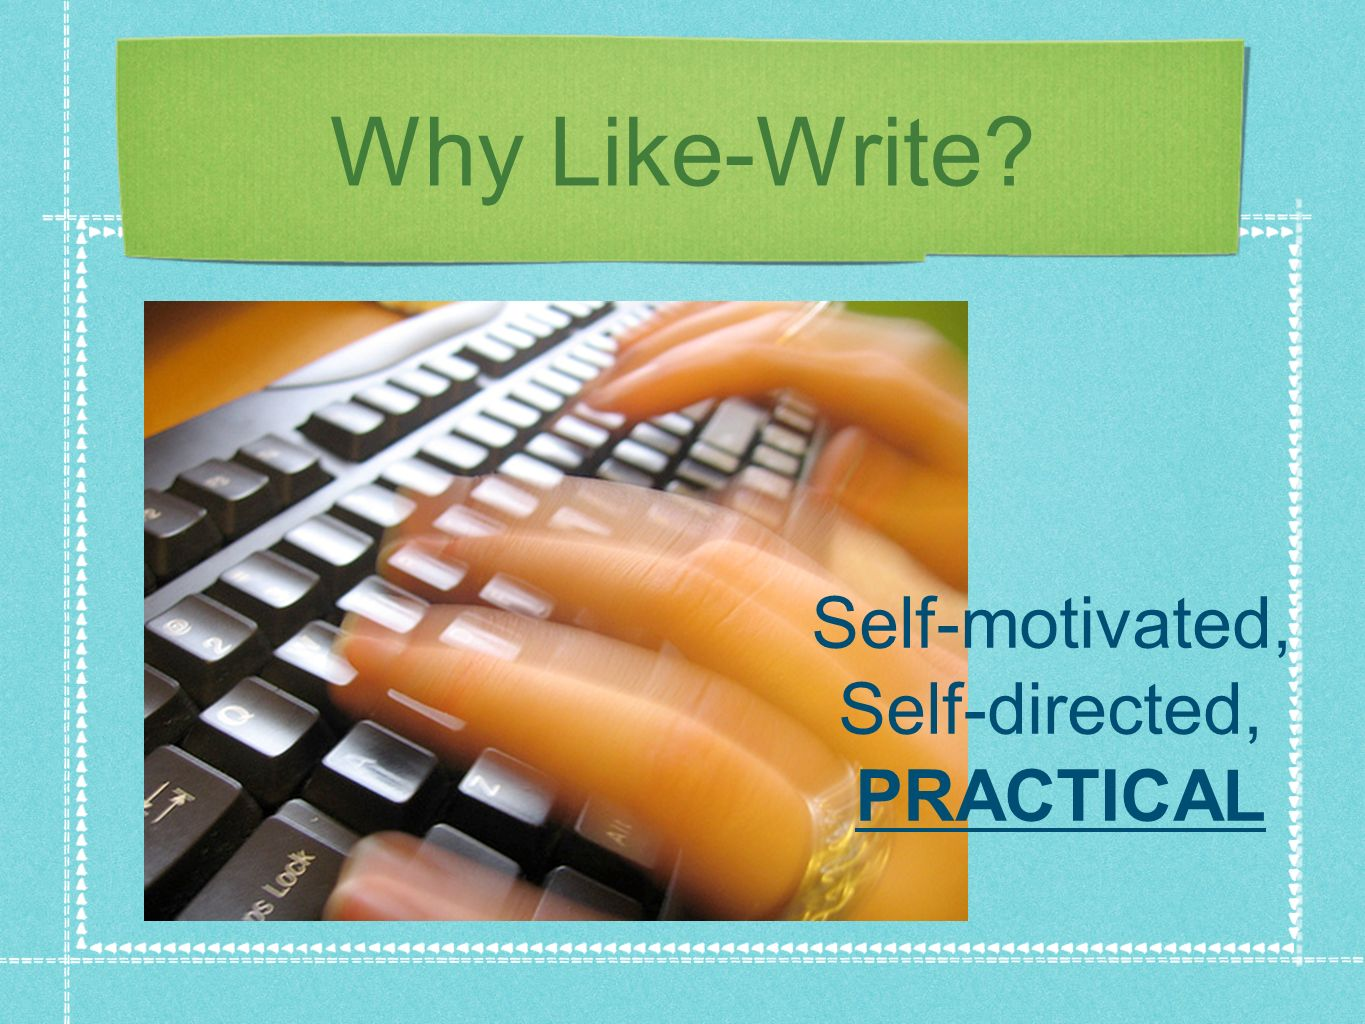 Why Like-Write? Self-motivated, Self-directed, PRACTICAL